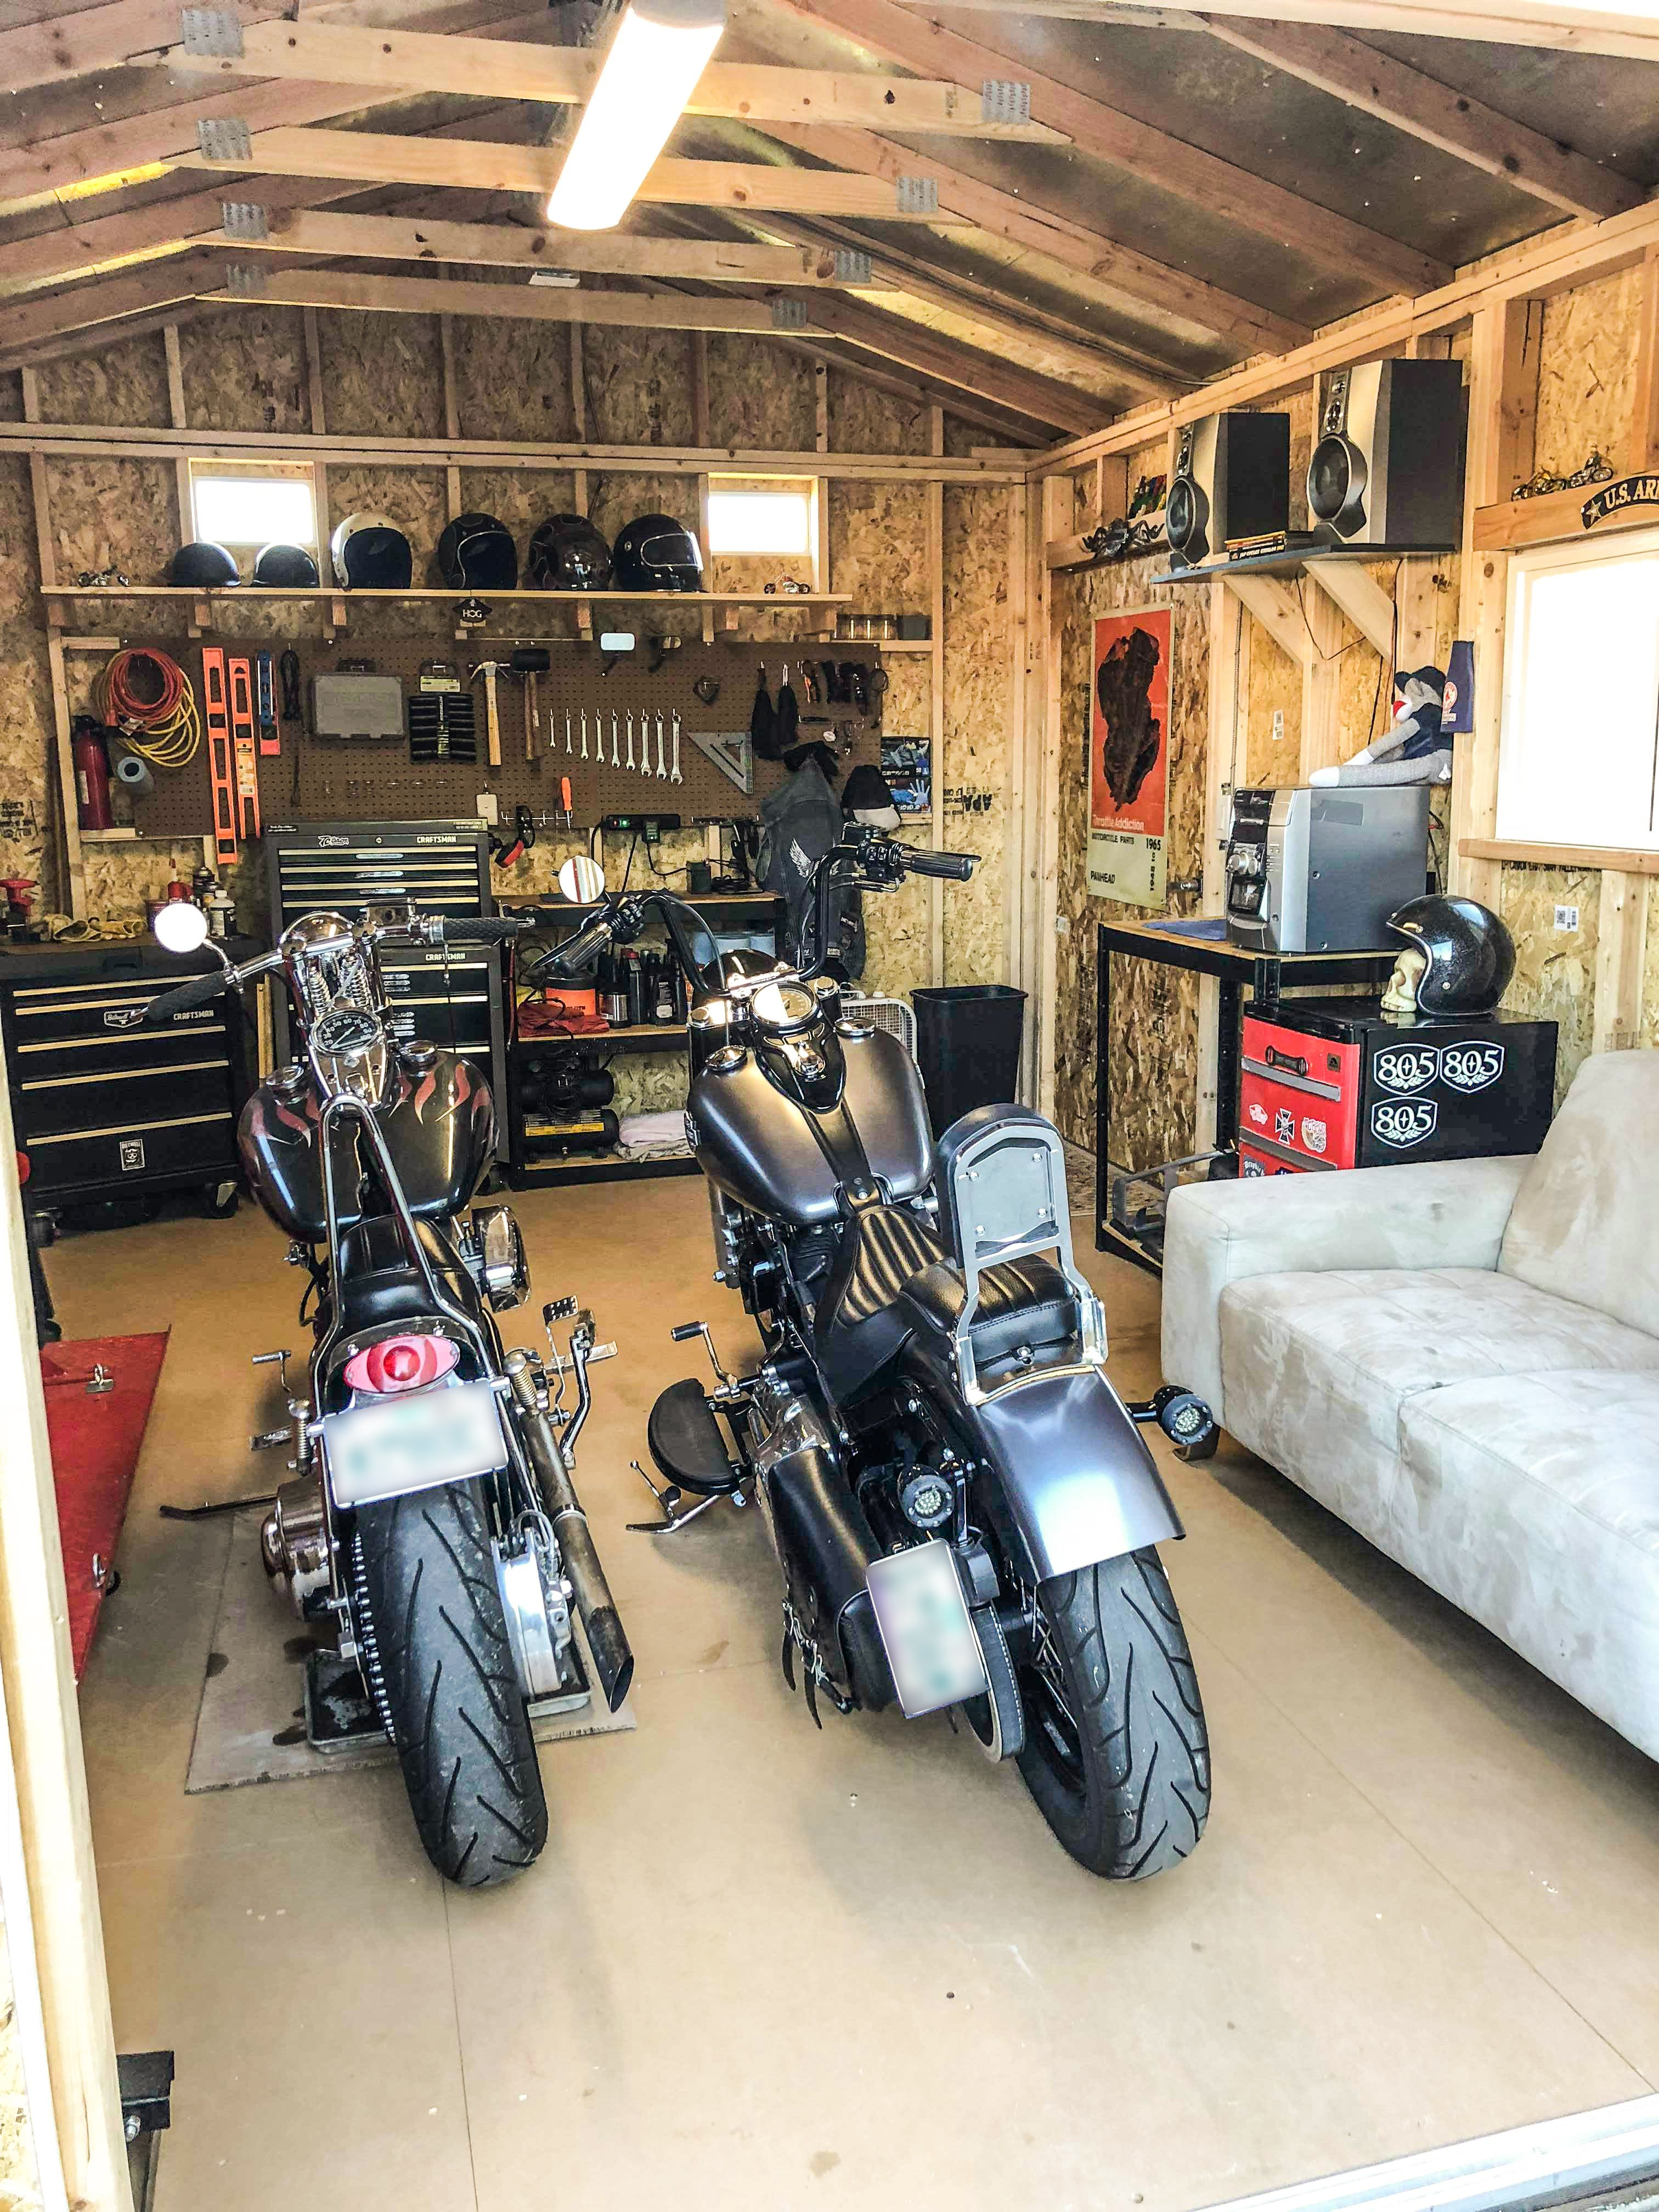 This man cave has it all-a workbench, storage, and a space to hang out after working on the motorcycles. Even better, it cleared out enough space in the garage to park the cars. Double duty and it looks great too! #garagemancaves